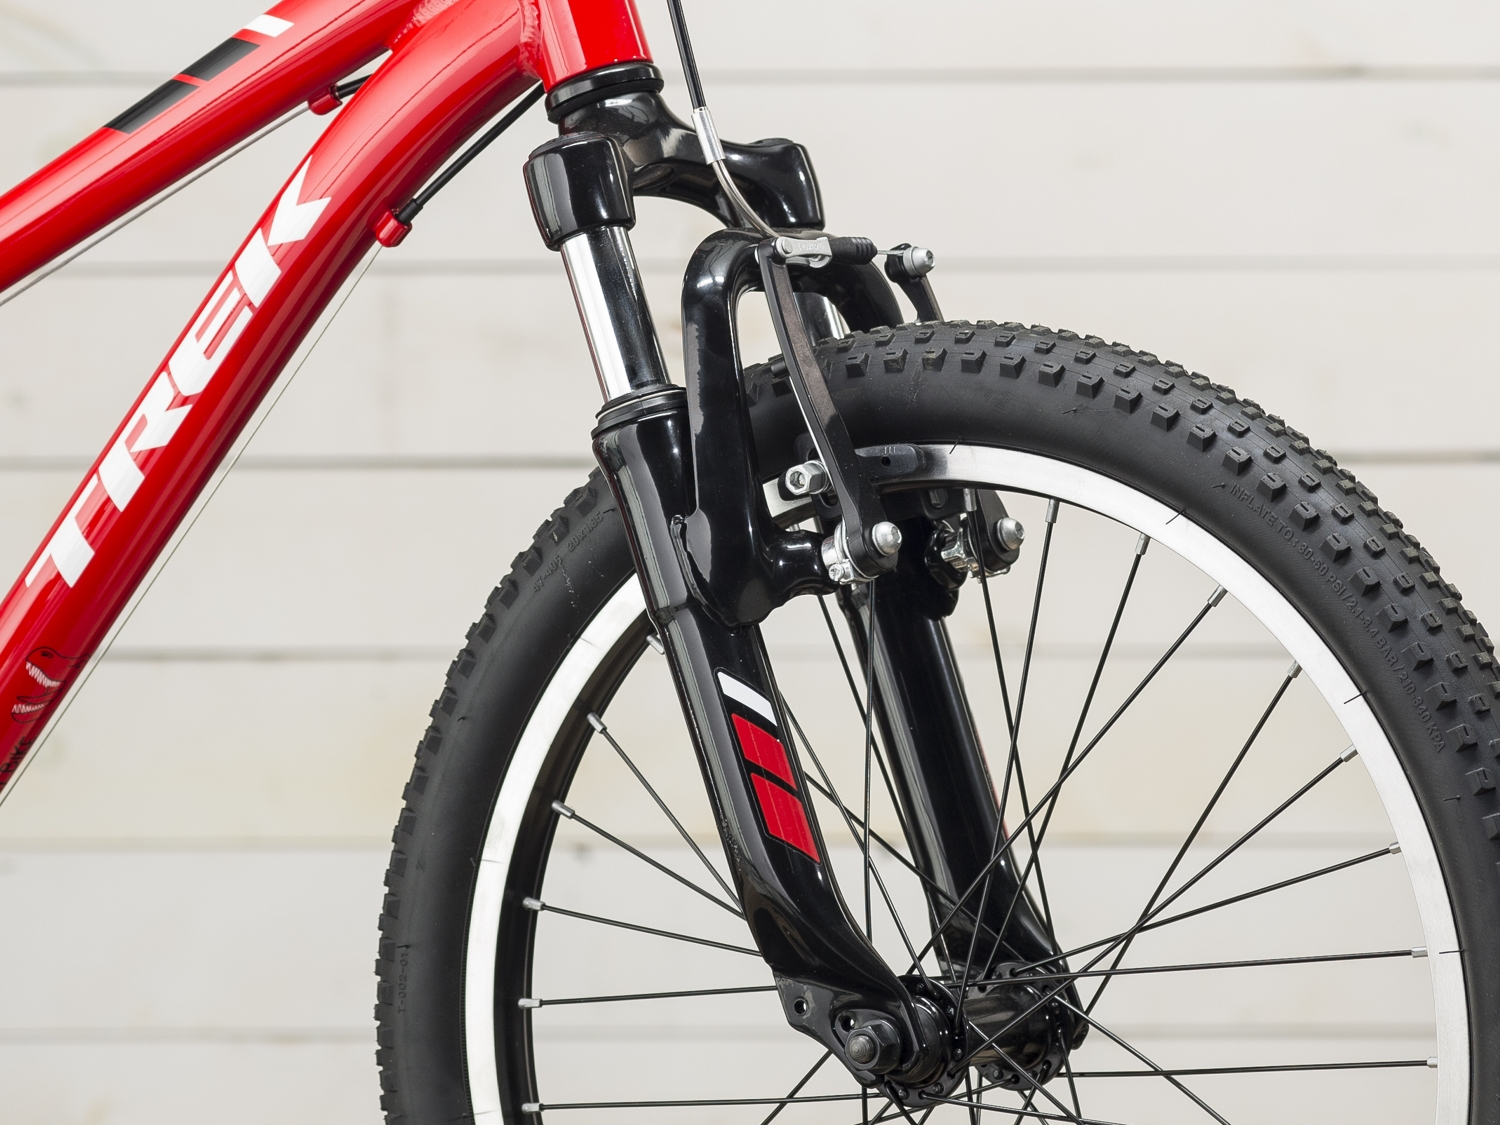 02748175a67 Precaliber 20 inch 6 speed in Red. Was $369.95 now $299 - Life Cycle ...